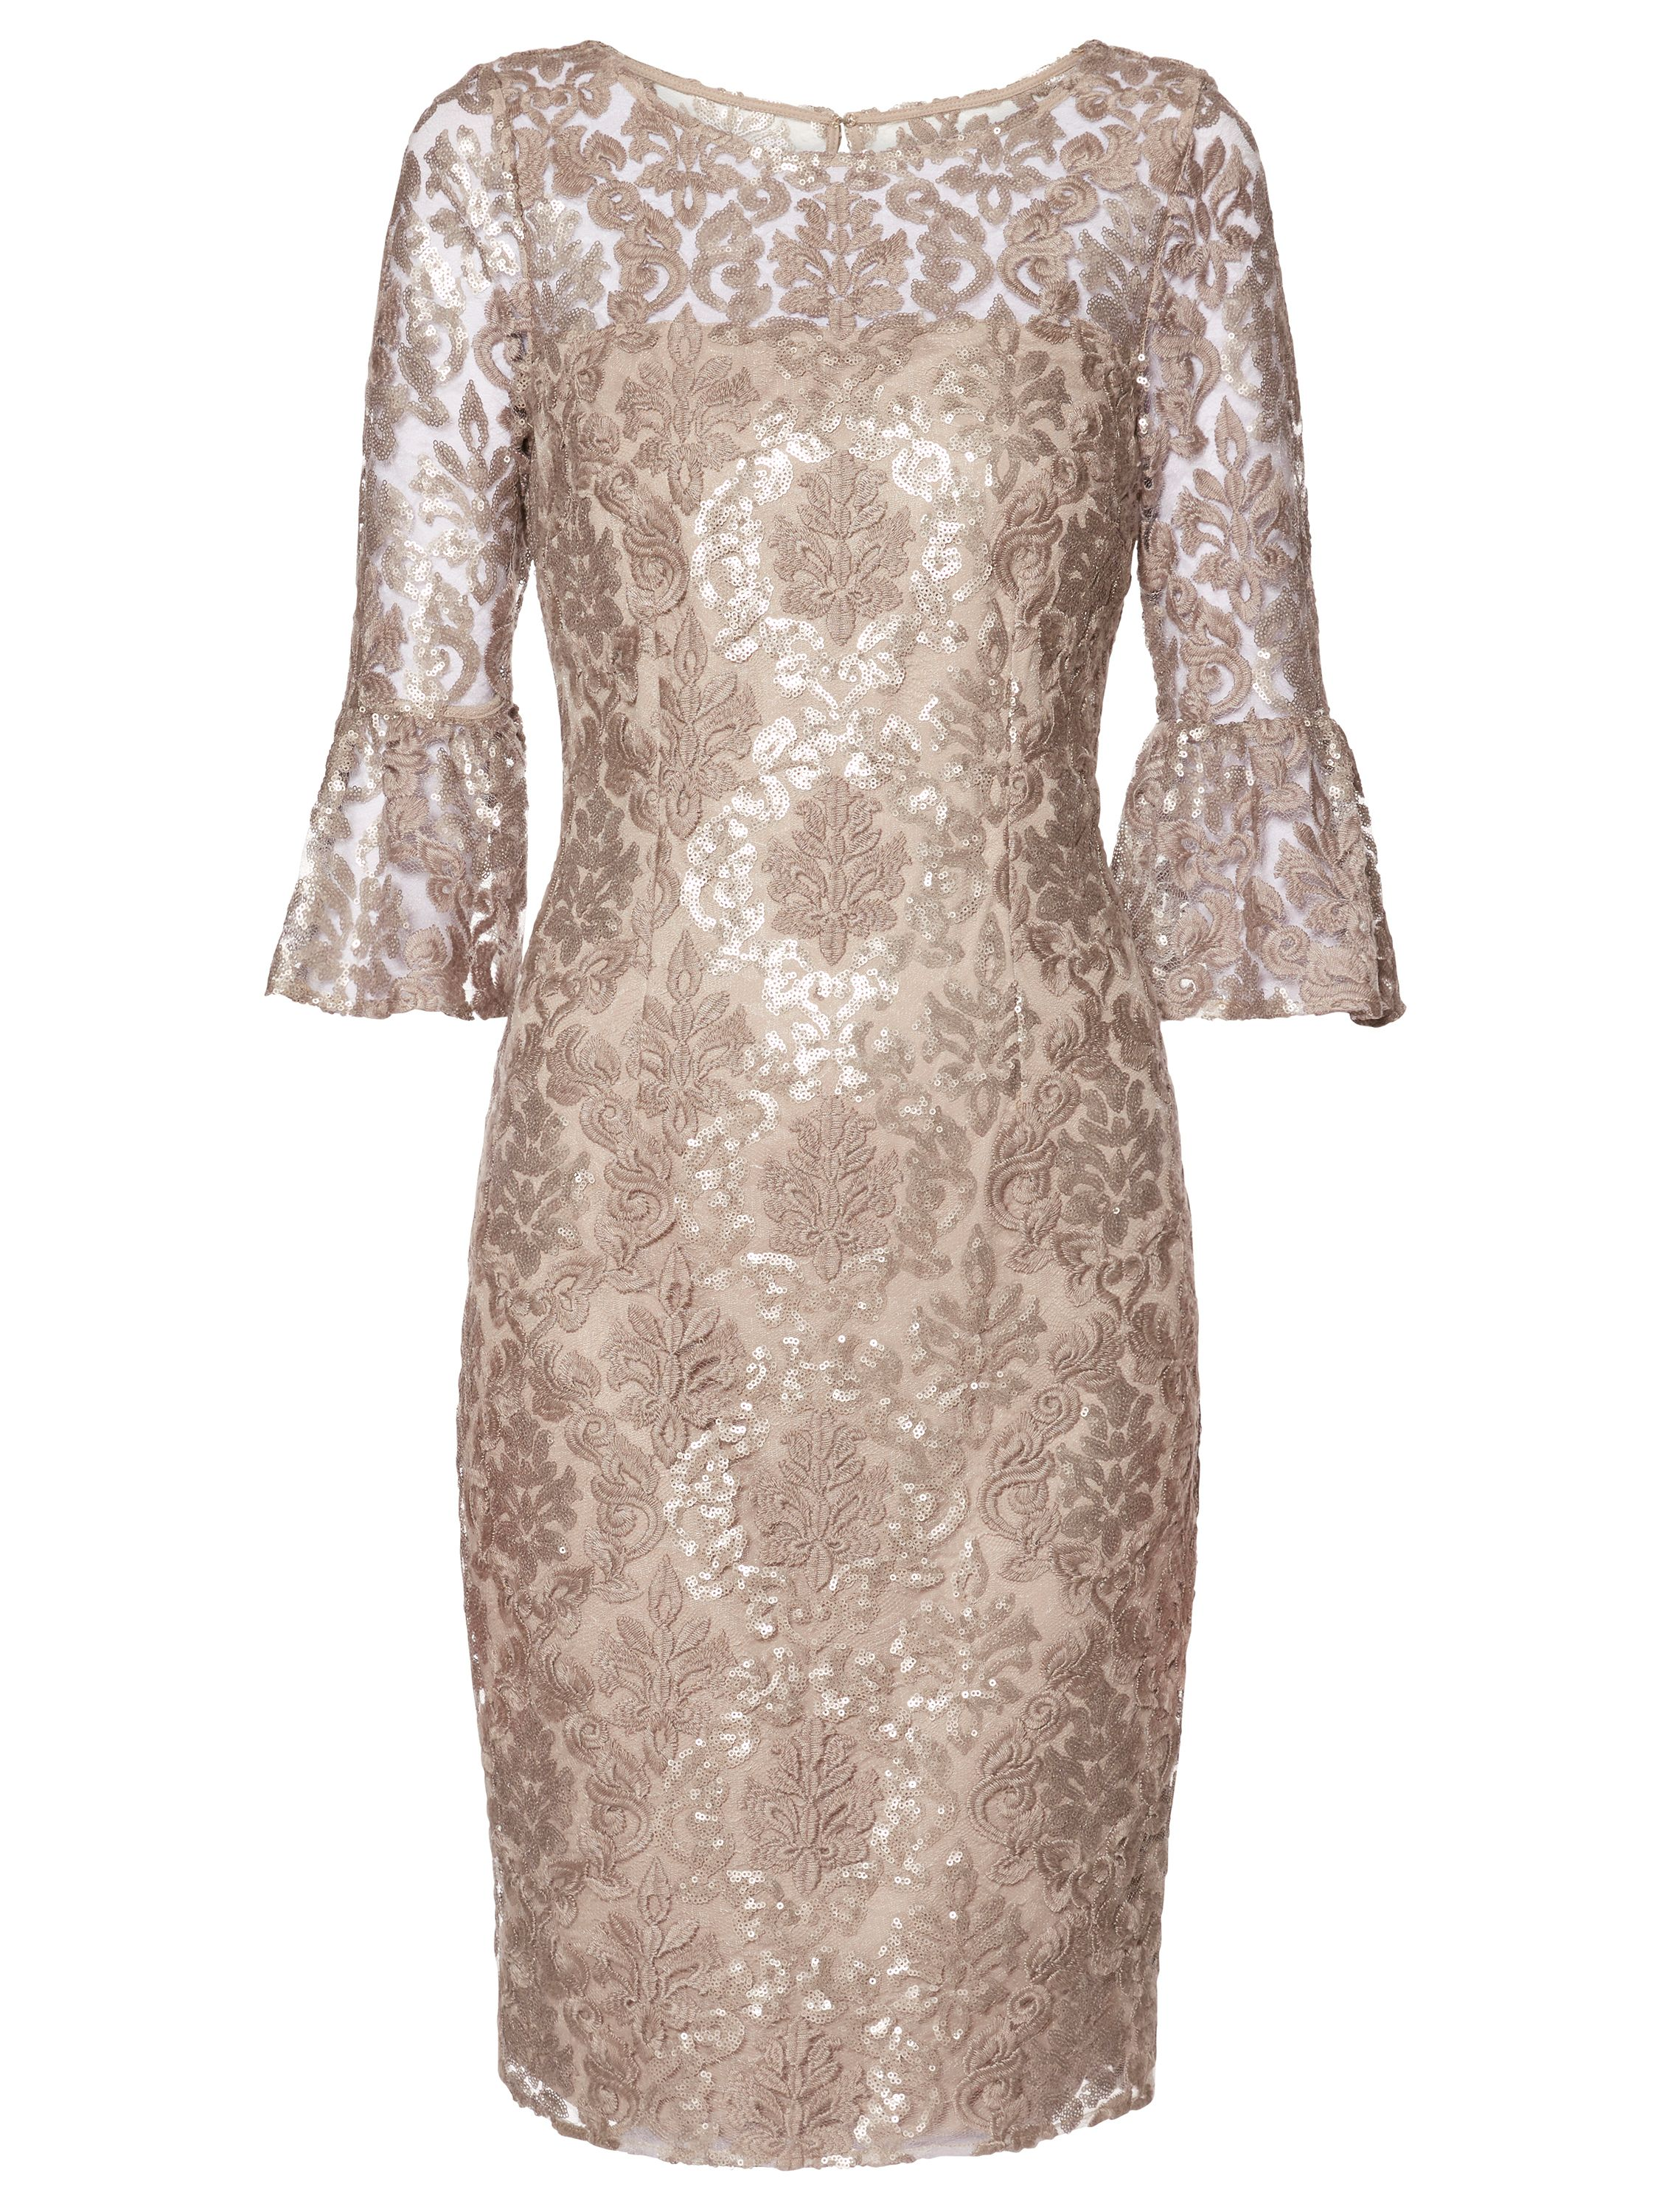 Gina Bacconi Candace Sequin Embroidery Dress, White